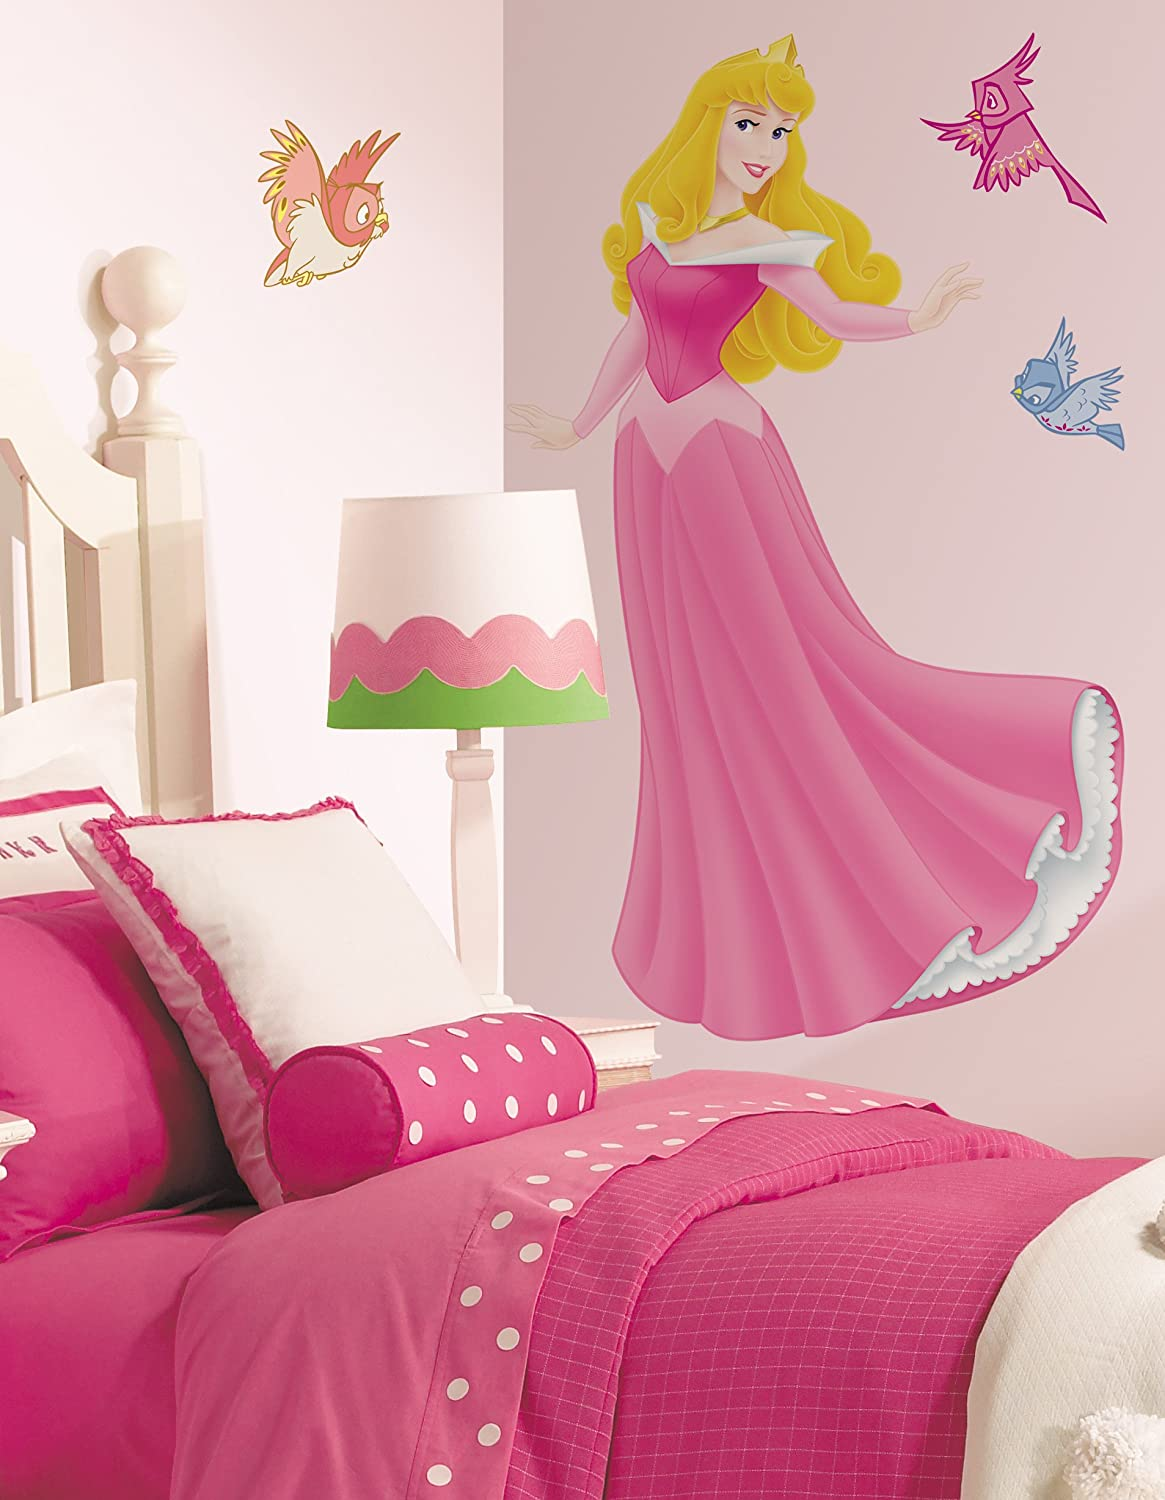 Amazon roommates rmk1466gm sleeping beauty peel stick giant amazon roommates rmk1466gm sleeping beauty peel stick giant wall decal with gems home improvement amipublicfo Gallery